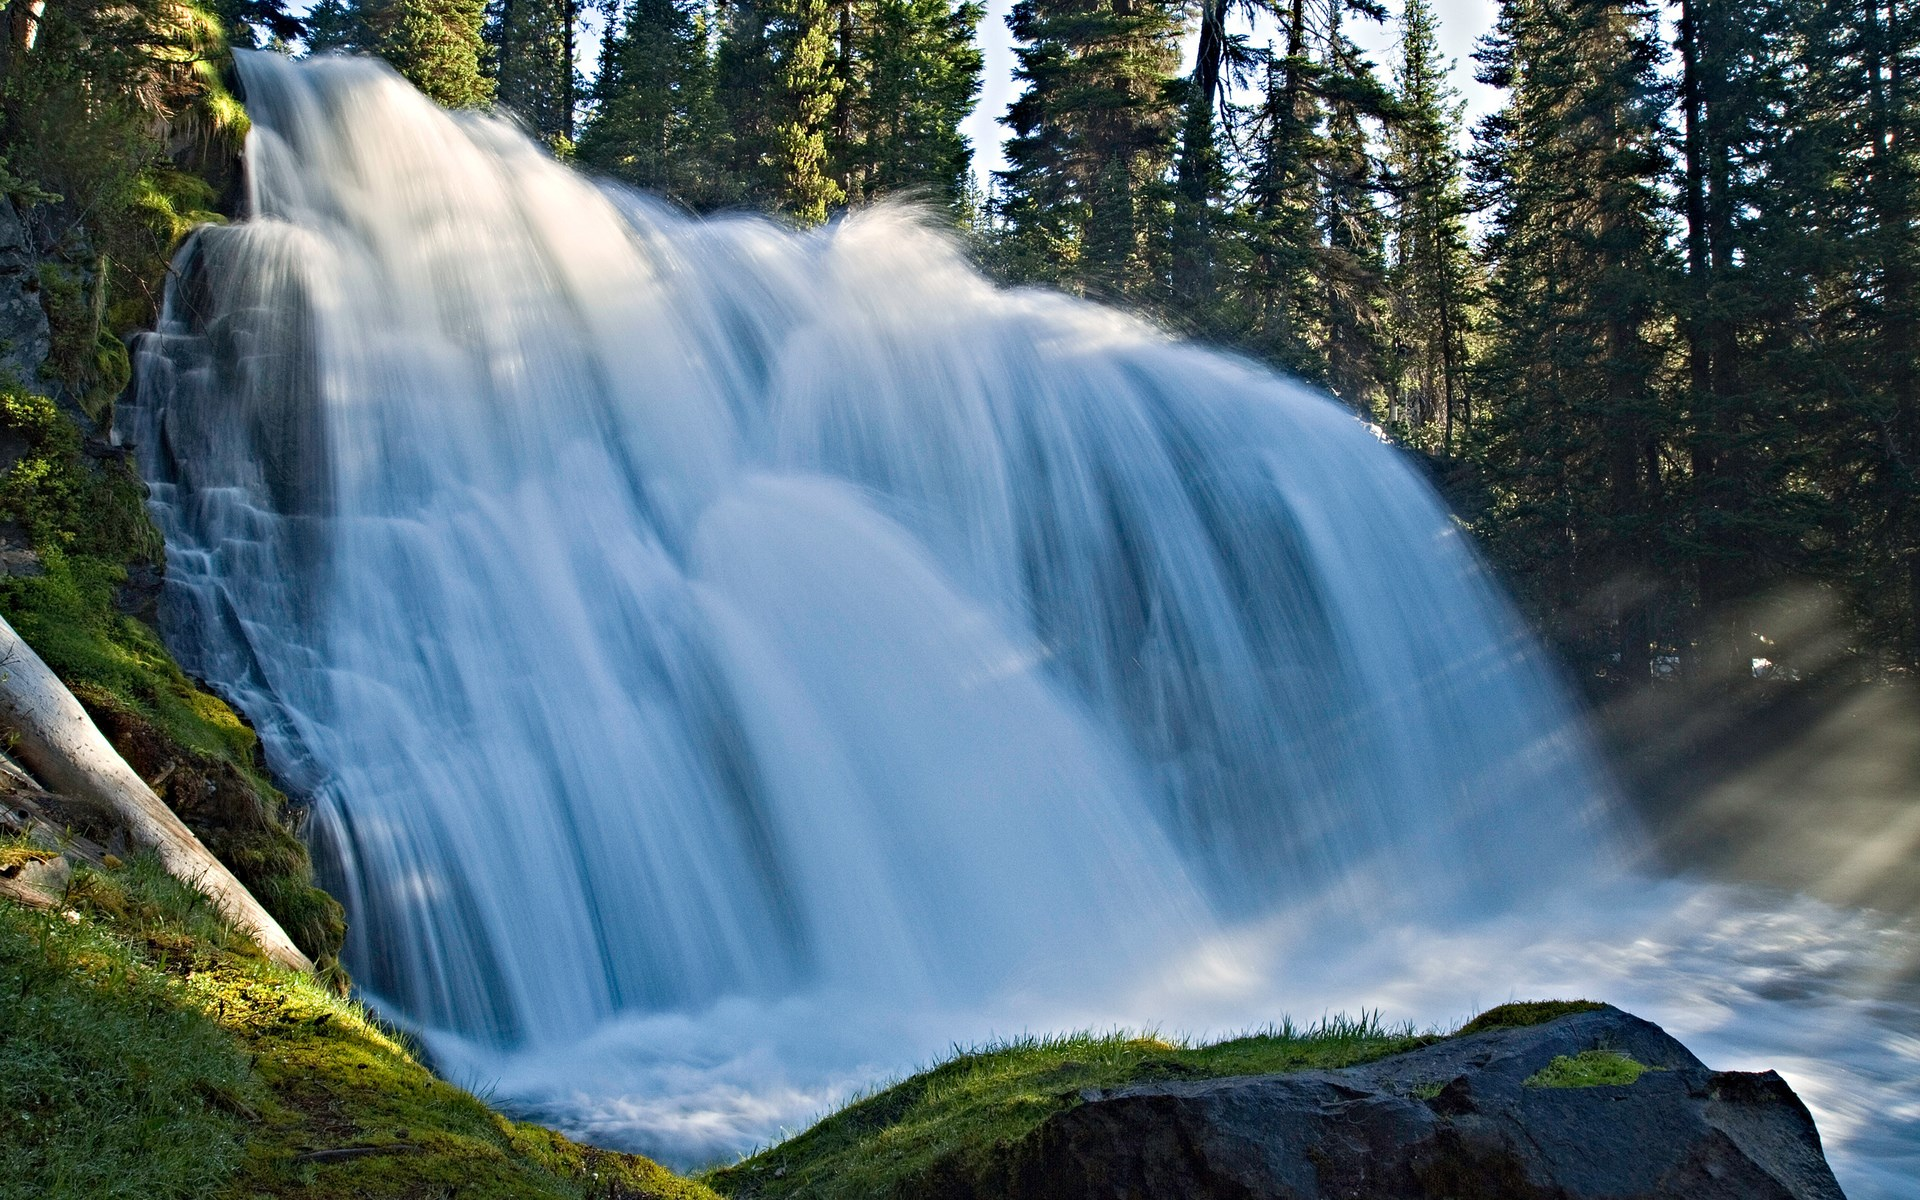 Hd Wallpapers Of S: Waterfall Wallpapers, Pictures, Images